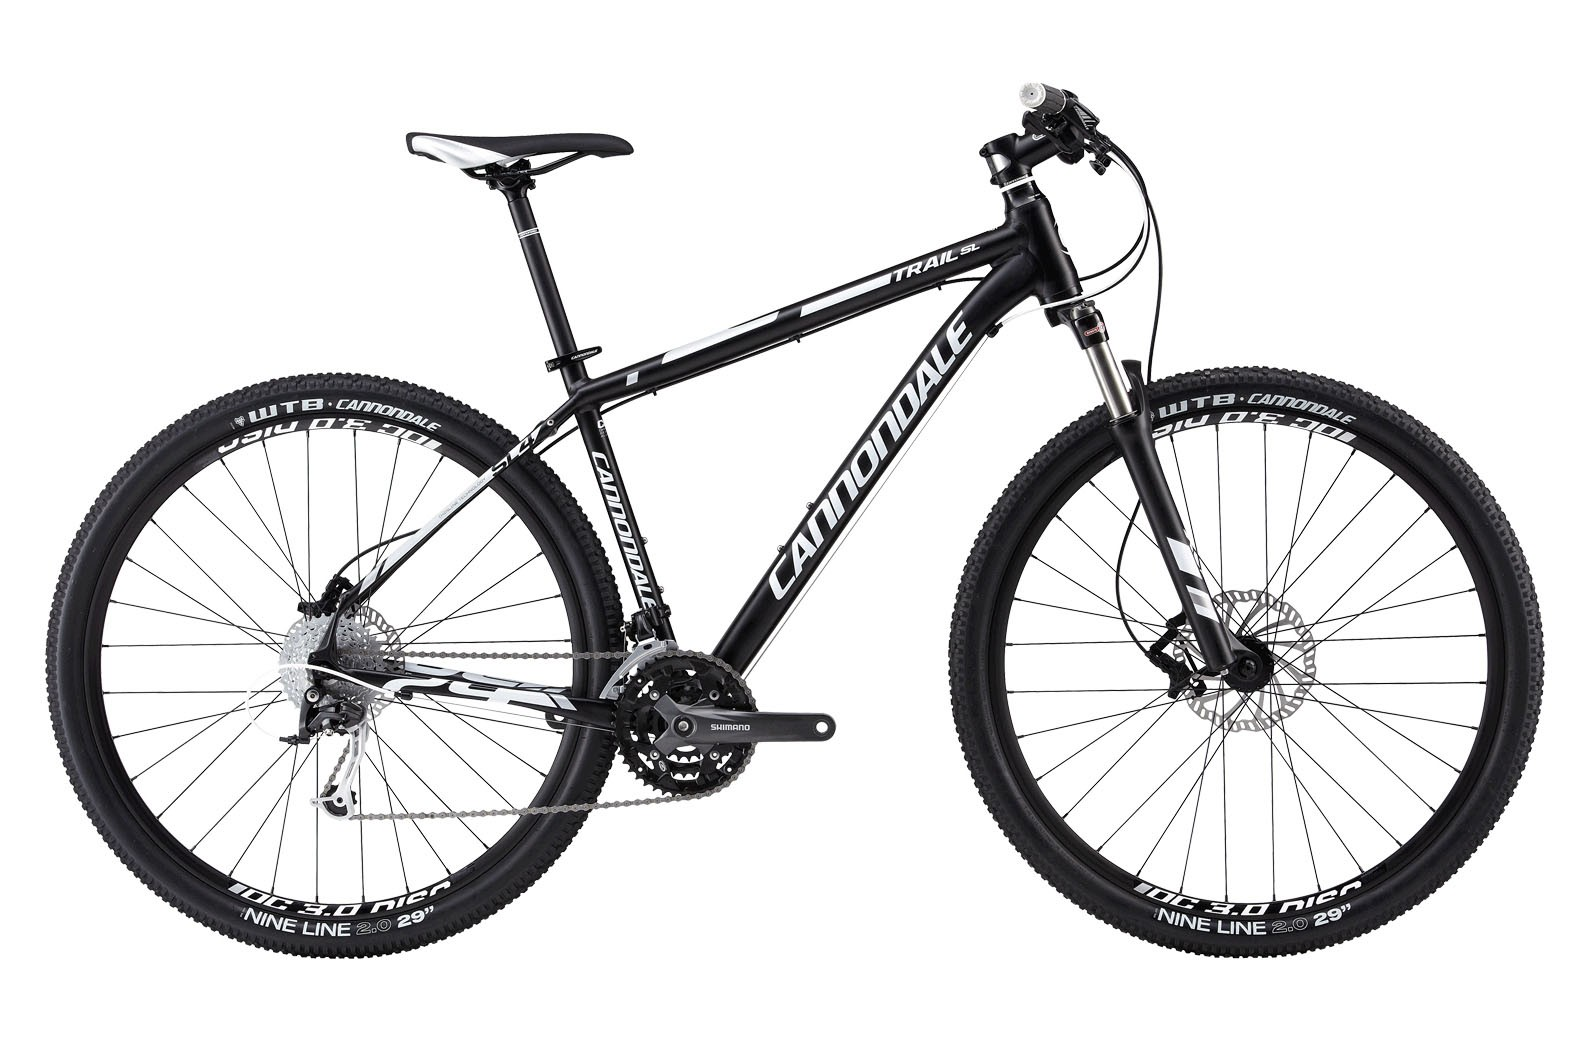 Горный велосипед Cannondale Trail SL 29er 4 (2013)